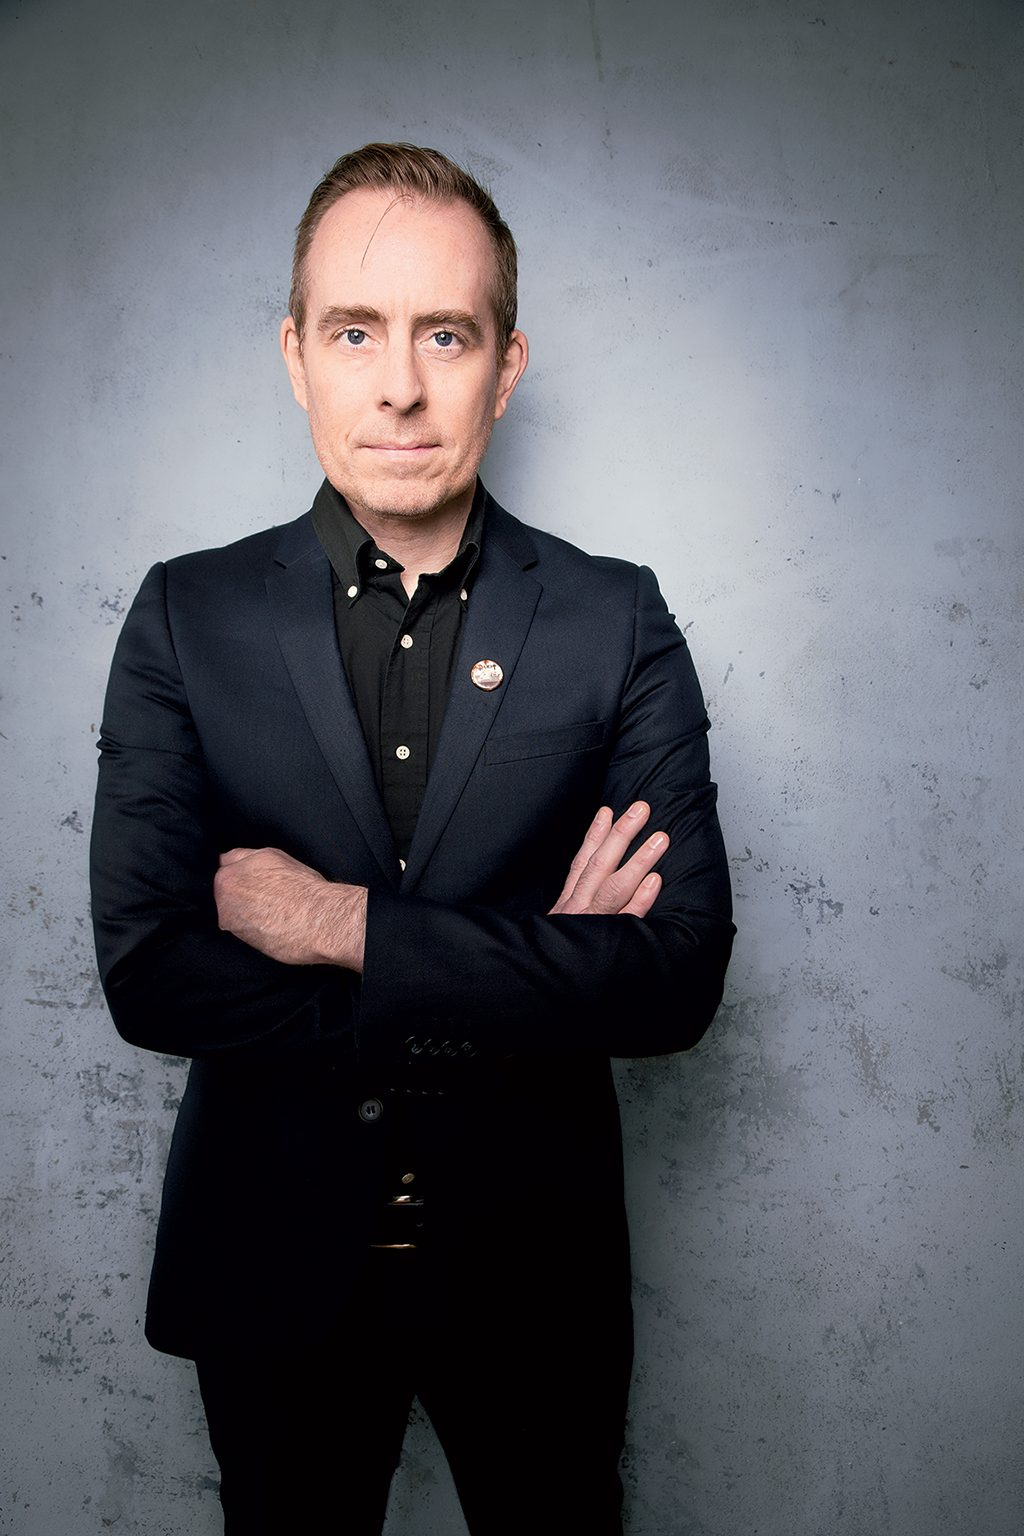 Photograph of Ted Leo courtesy of Flower Booking.